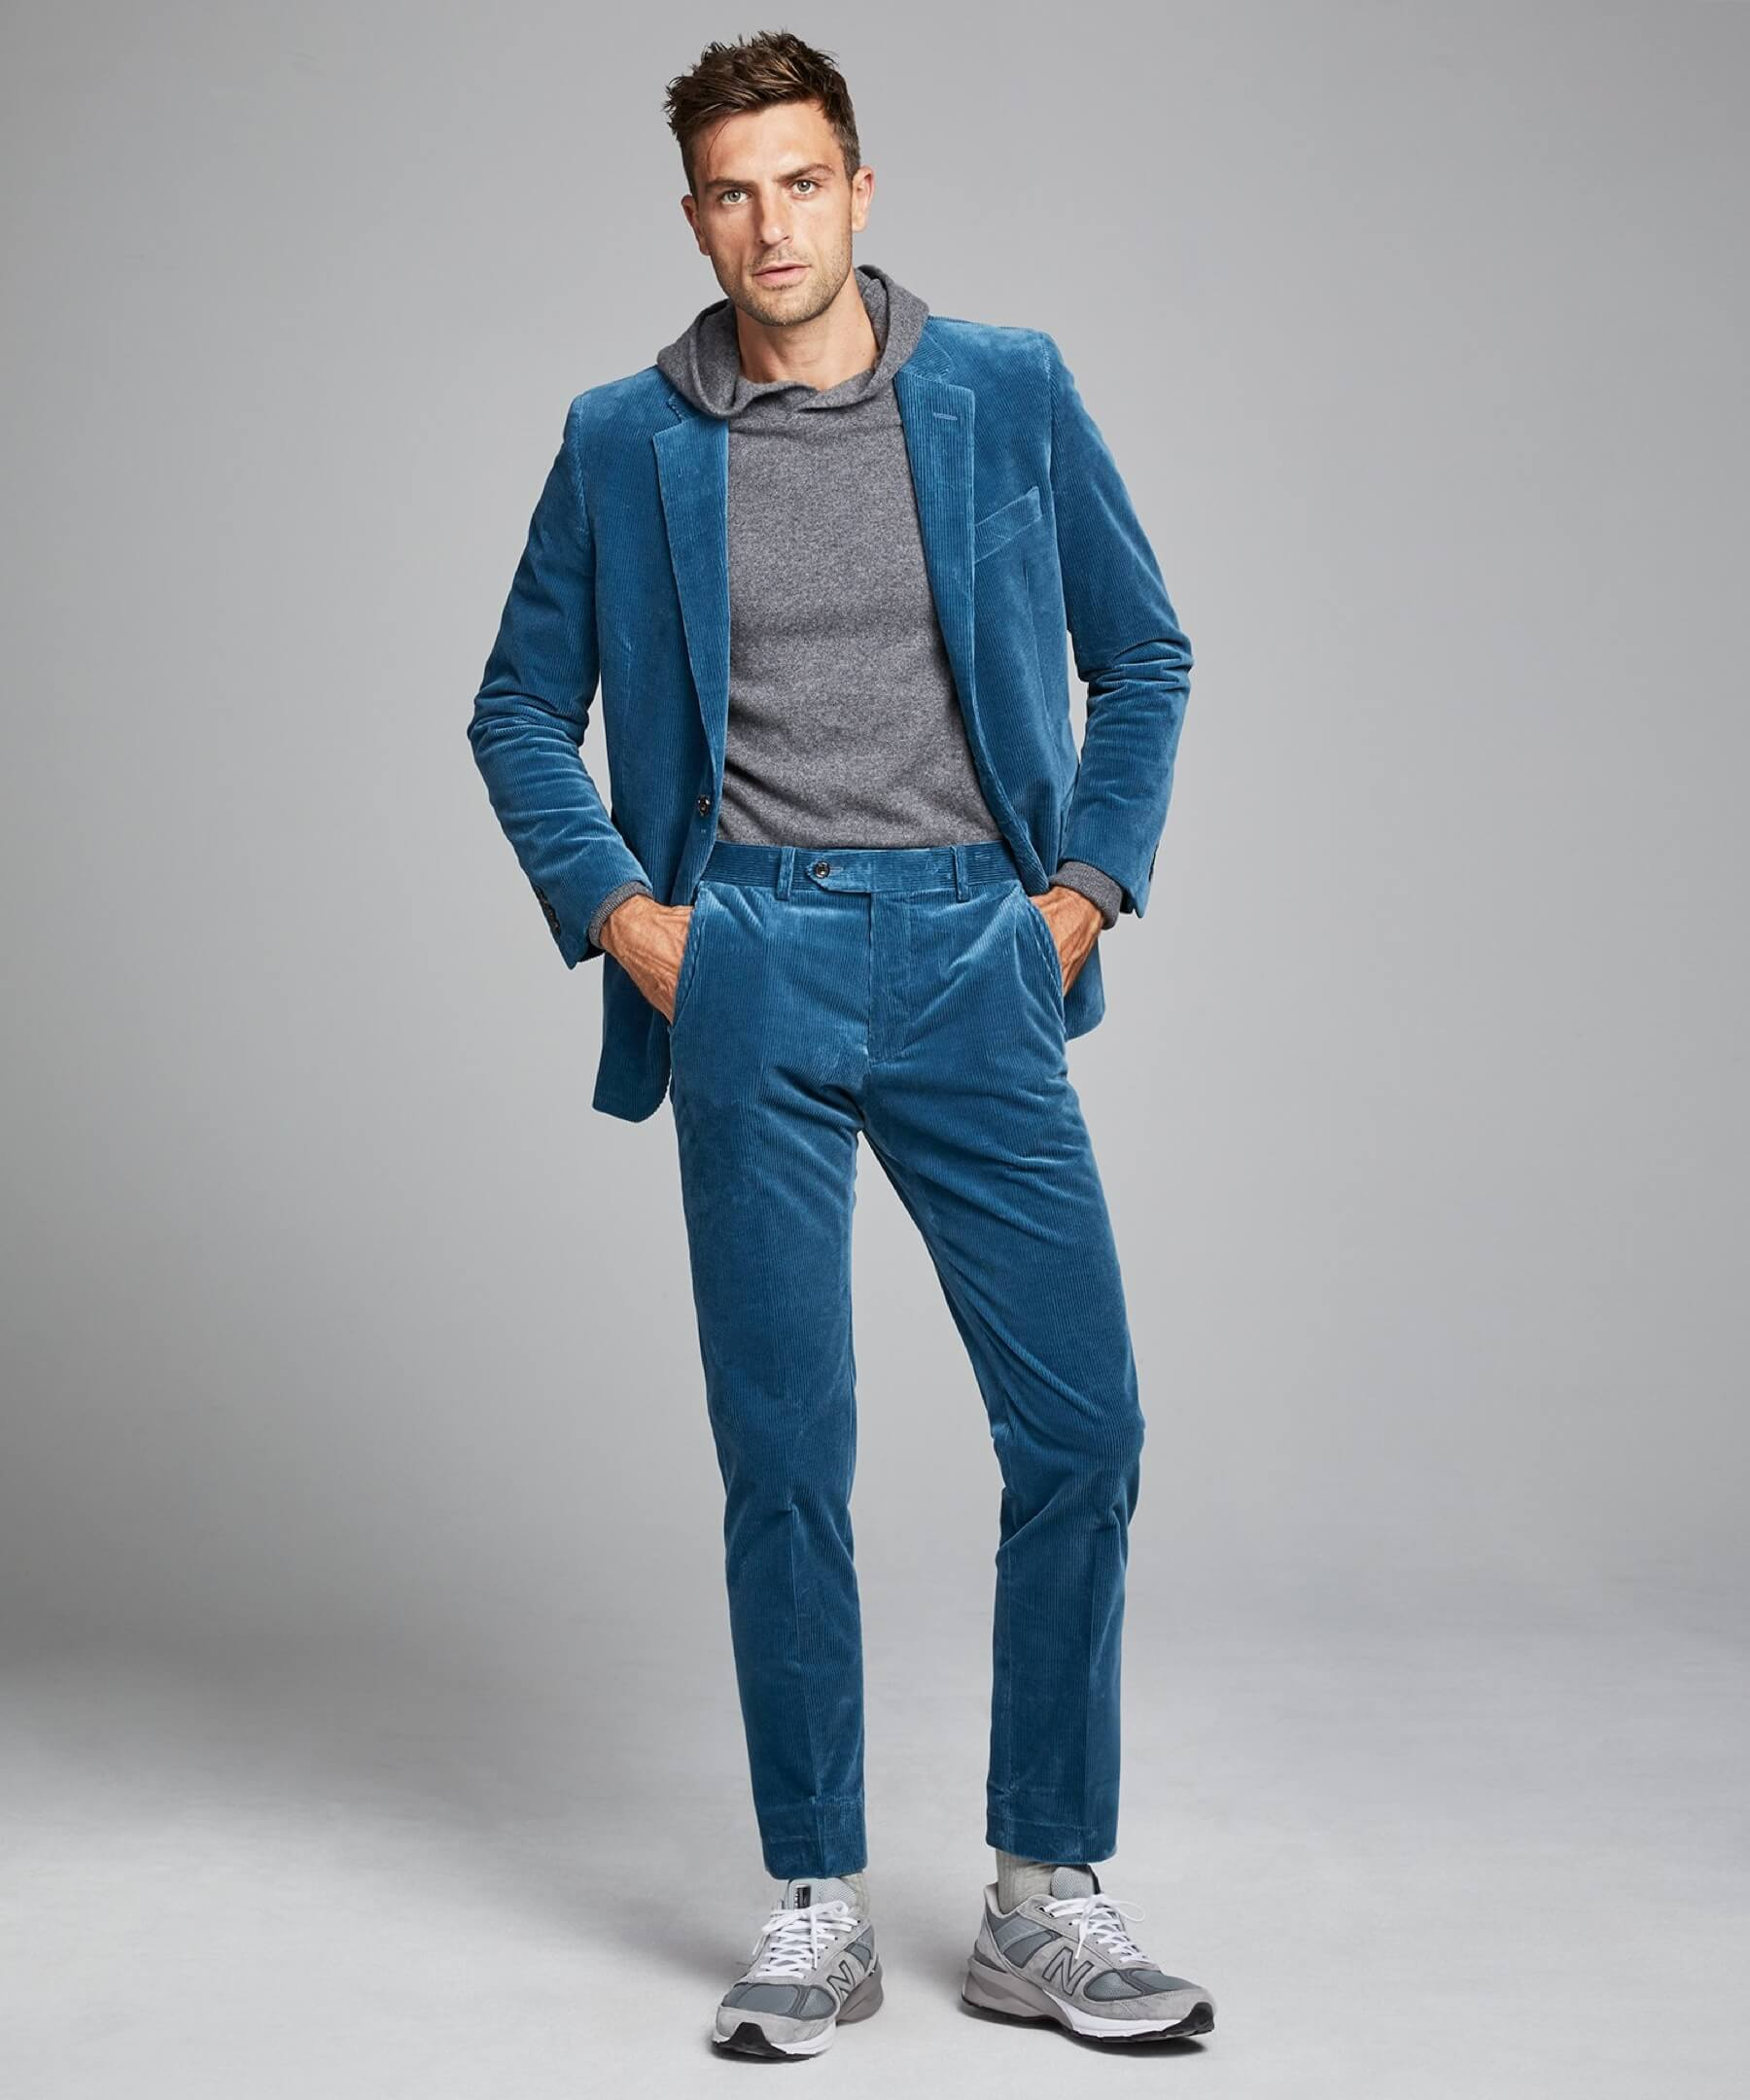 Todd Snyder Italian Stretch Cord Suit